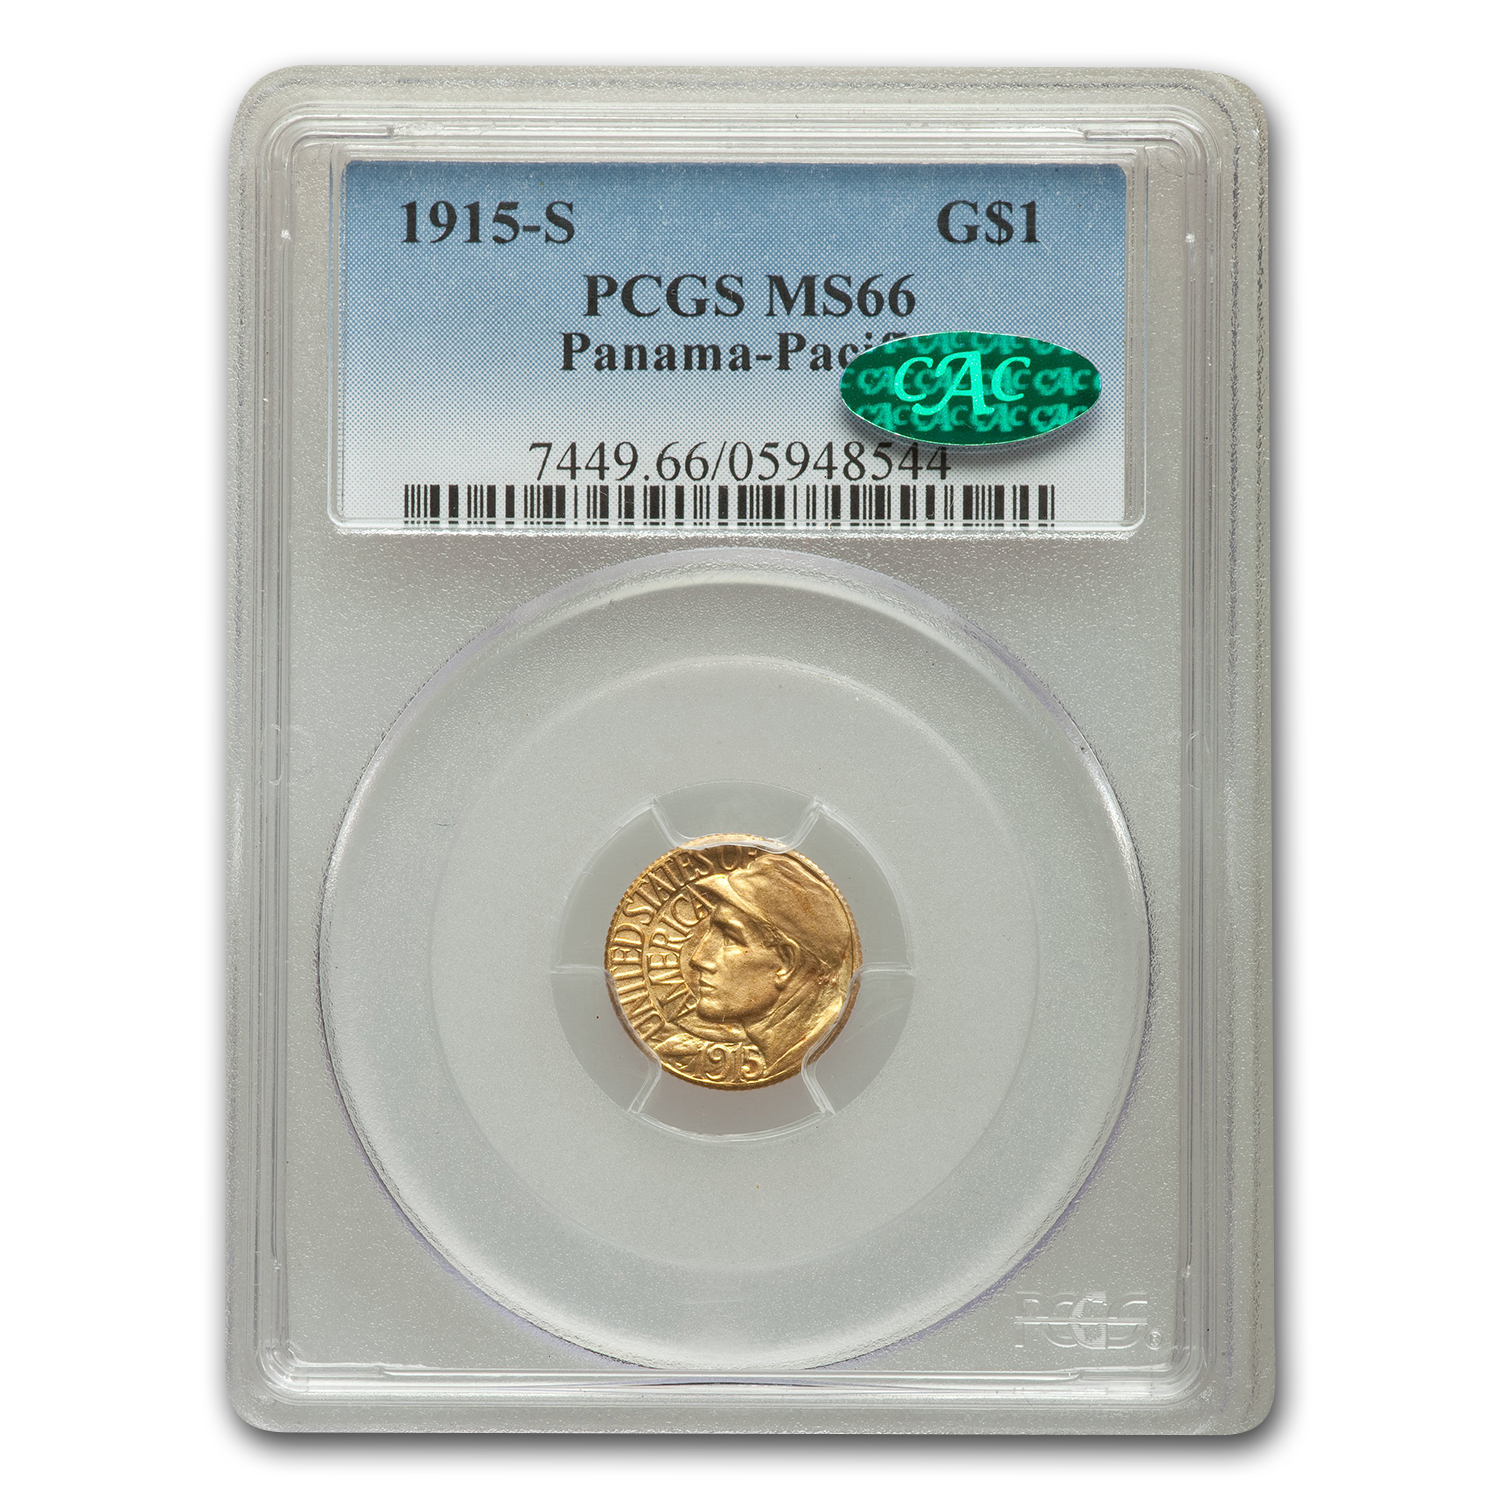 1915-S Gold $1.00 Panama-Pacific MS-66 PCGS CAC